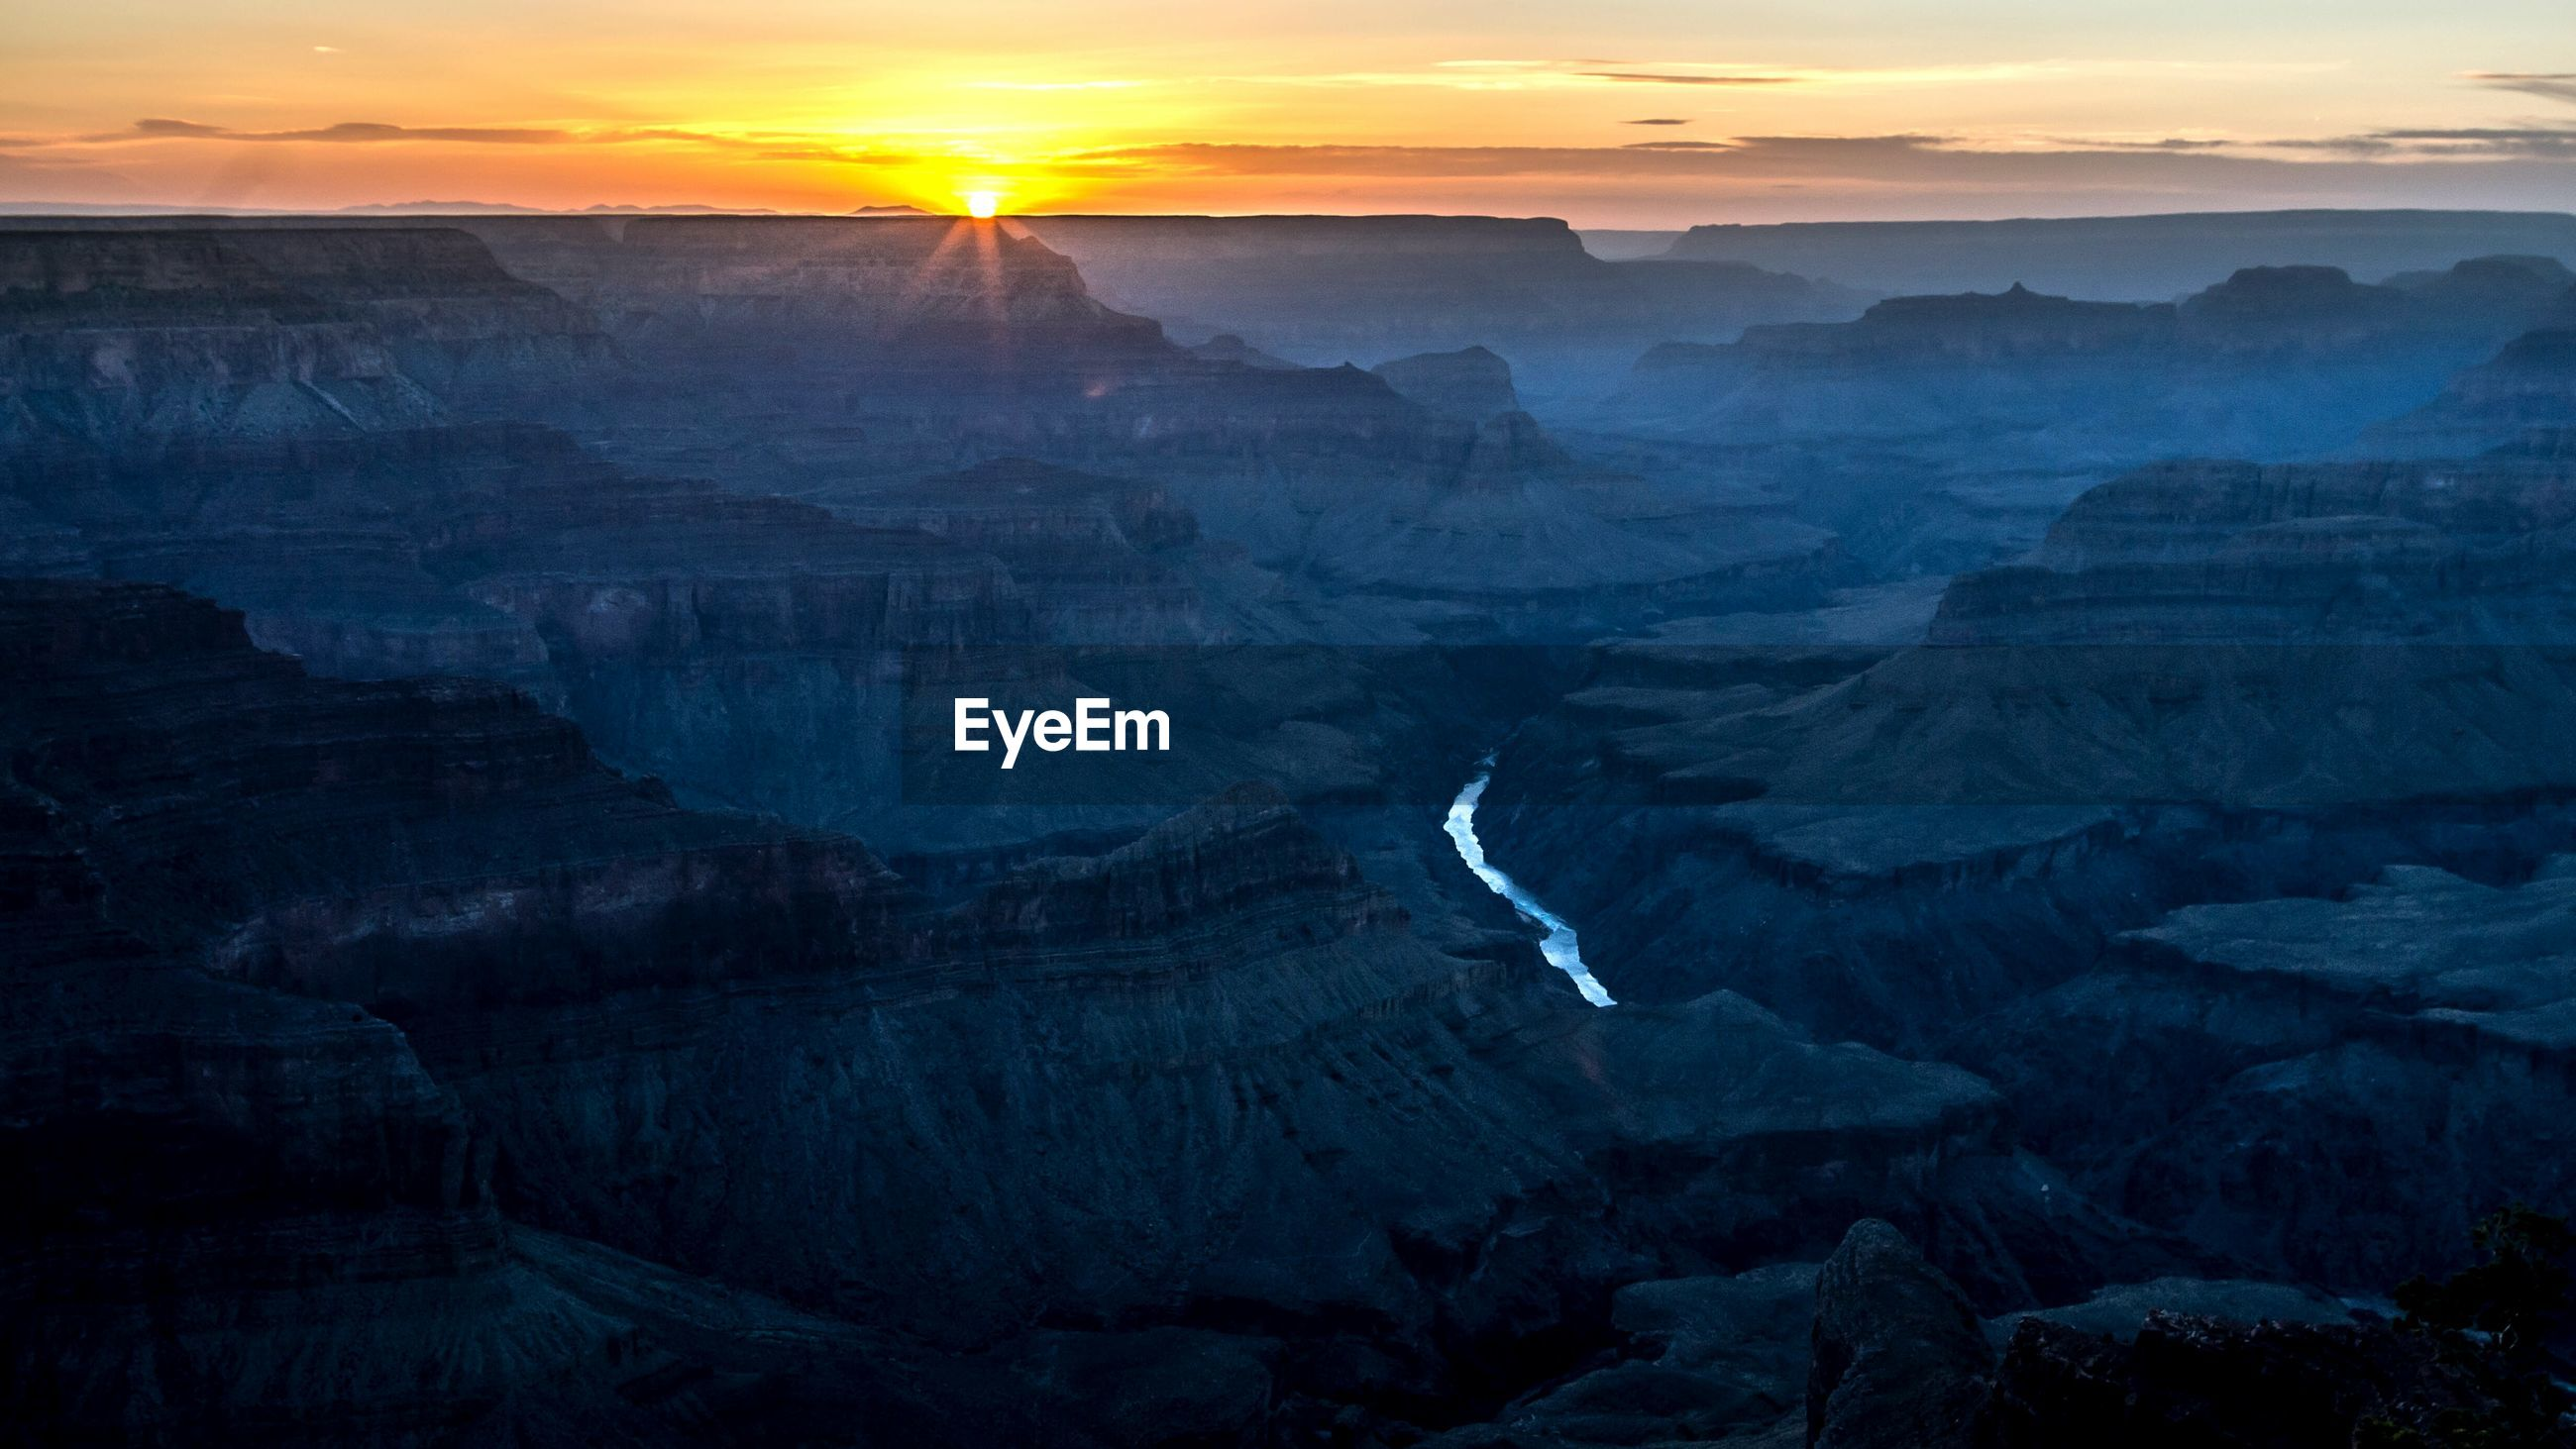 Colorado river in grand canyon national park against sky during sunset